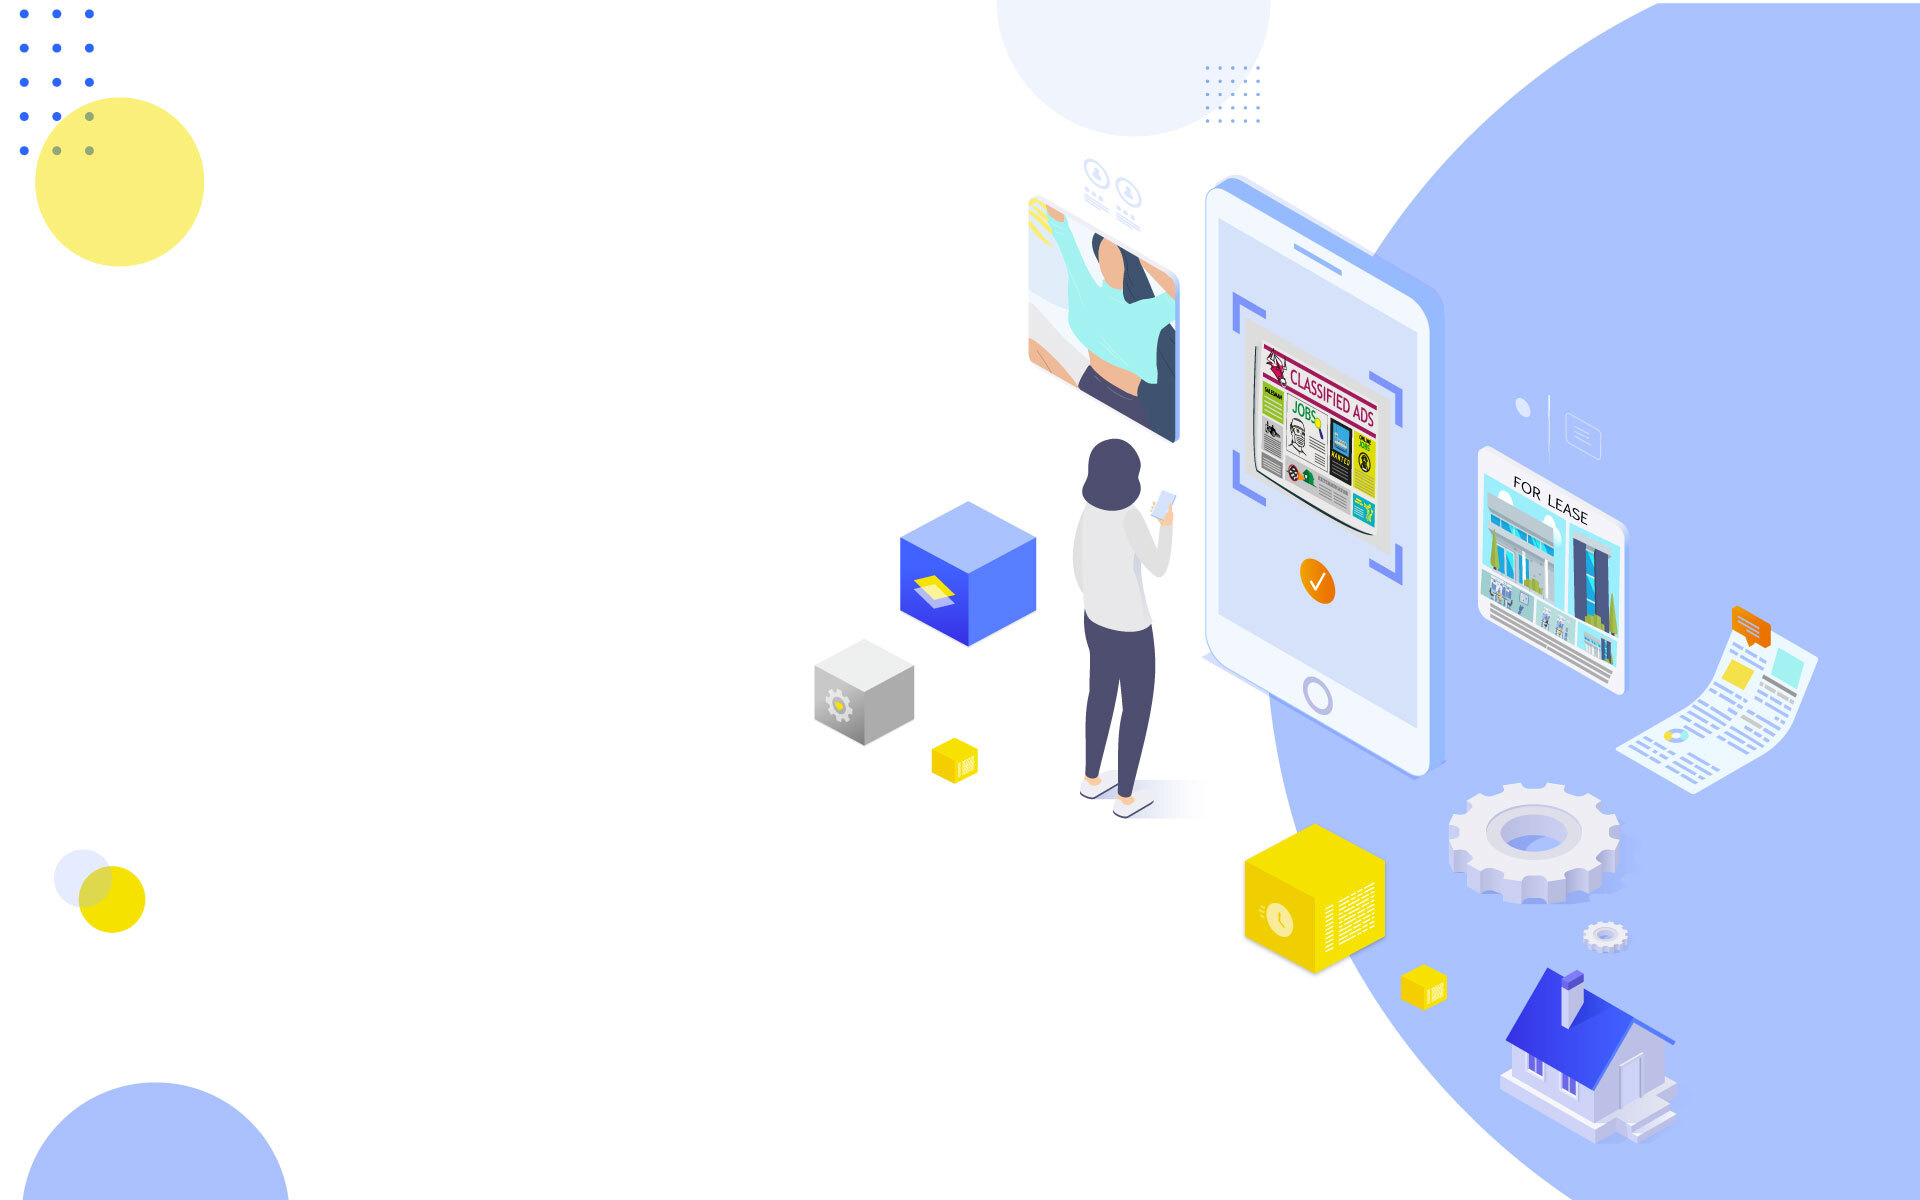 How AI-Powered Image Moderation Can Enable Faster User Onboarding